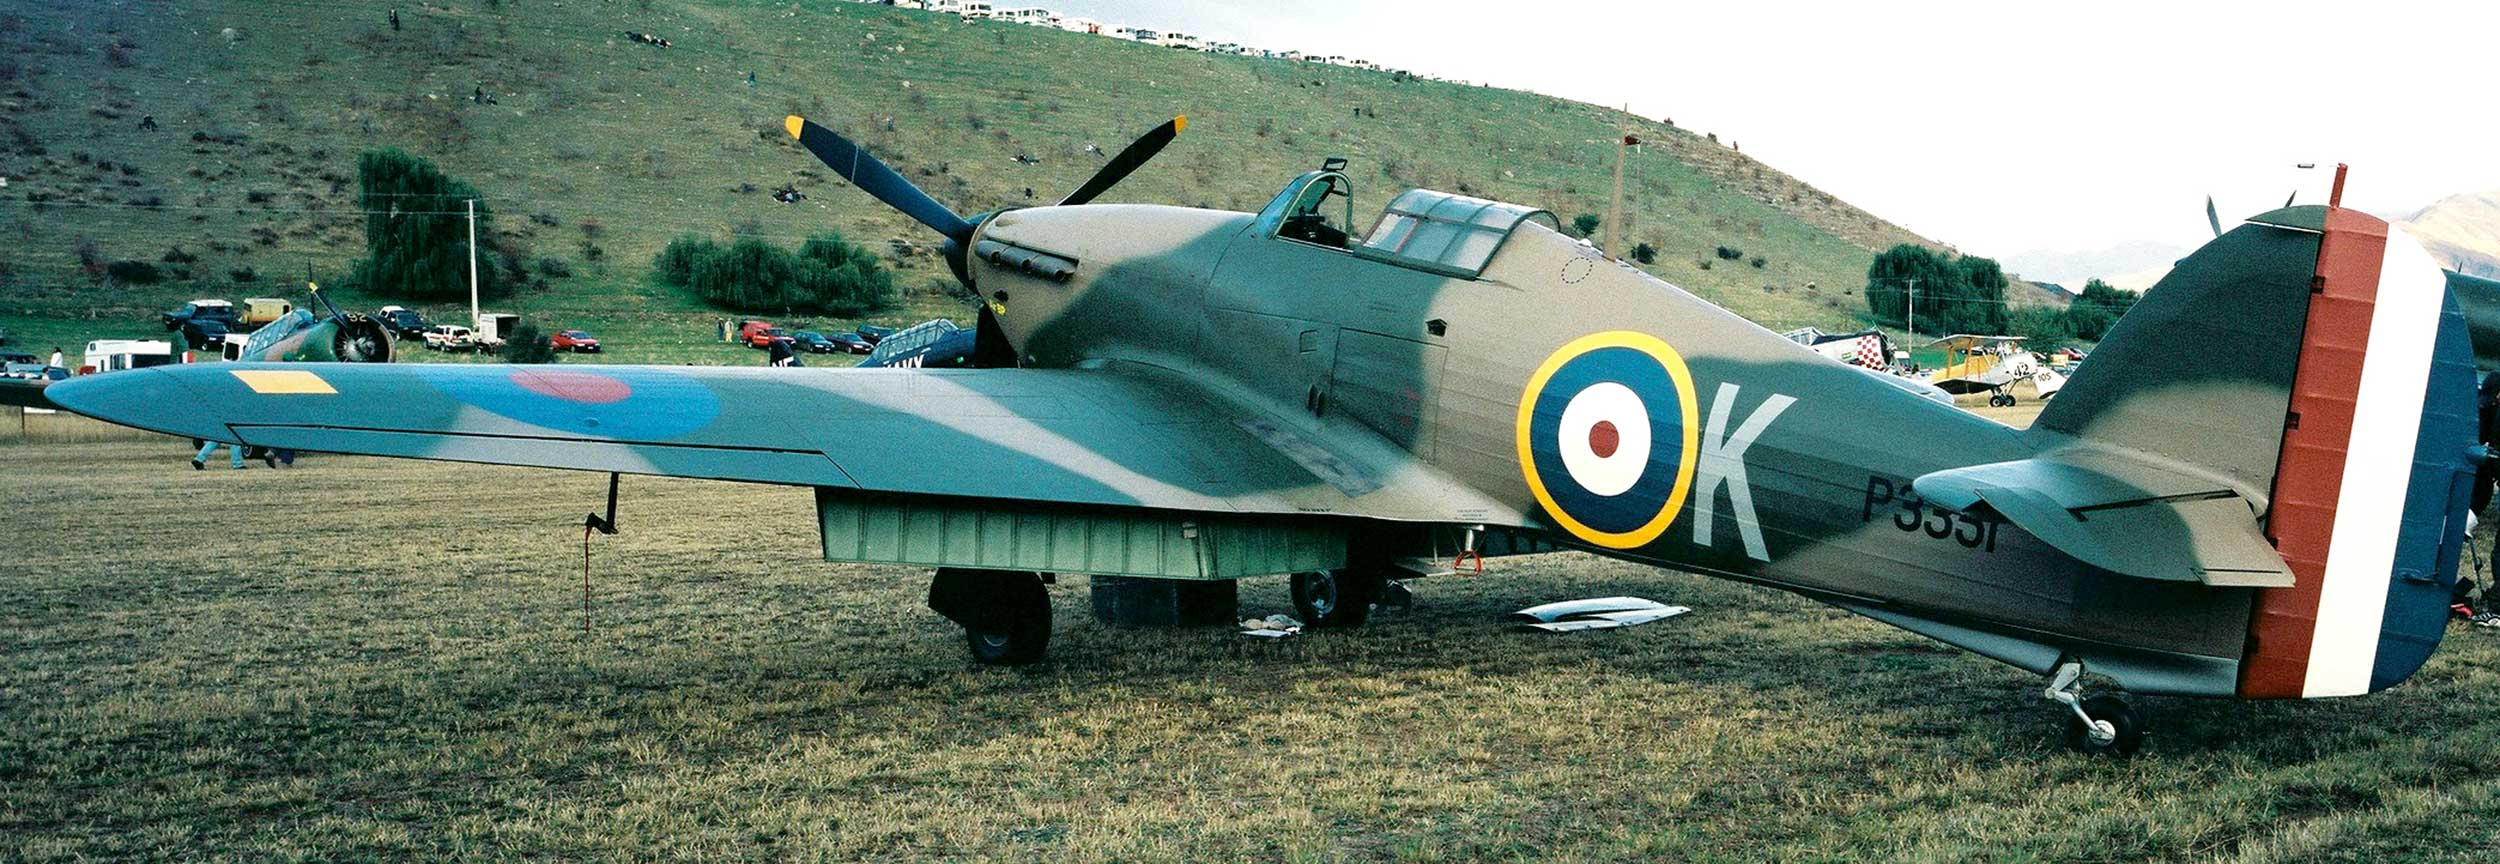 View of a Hurricane war plane on ground at Wanaka Air Show